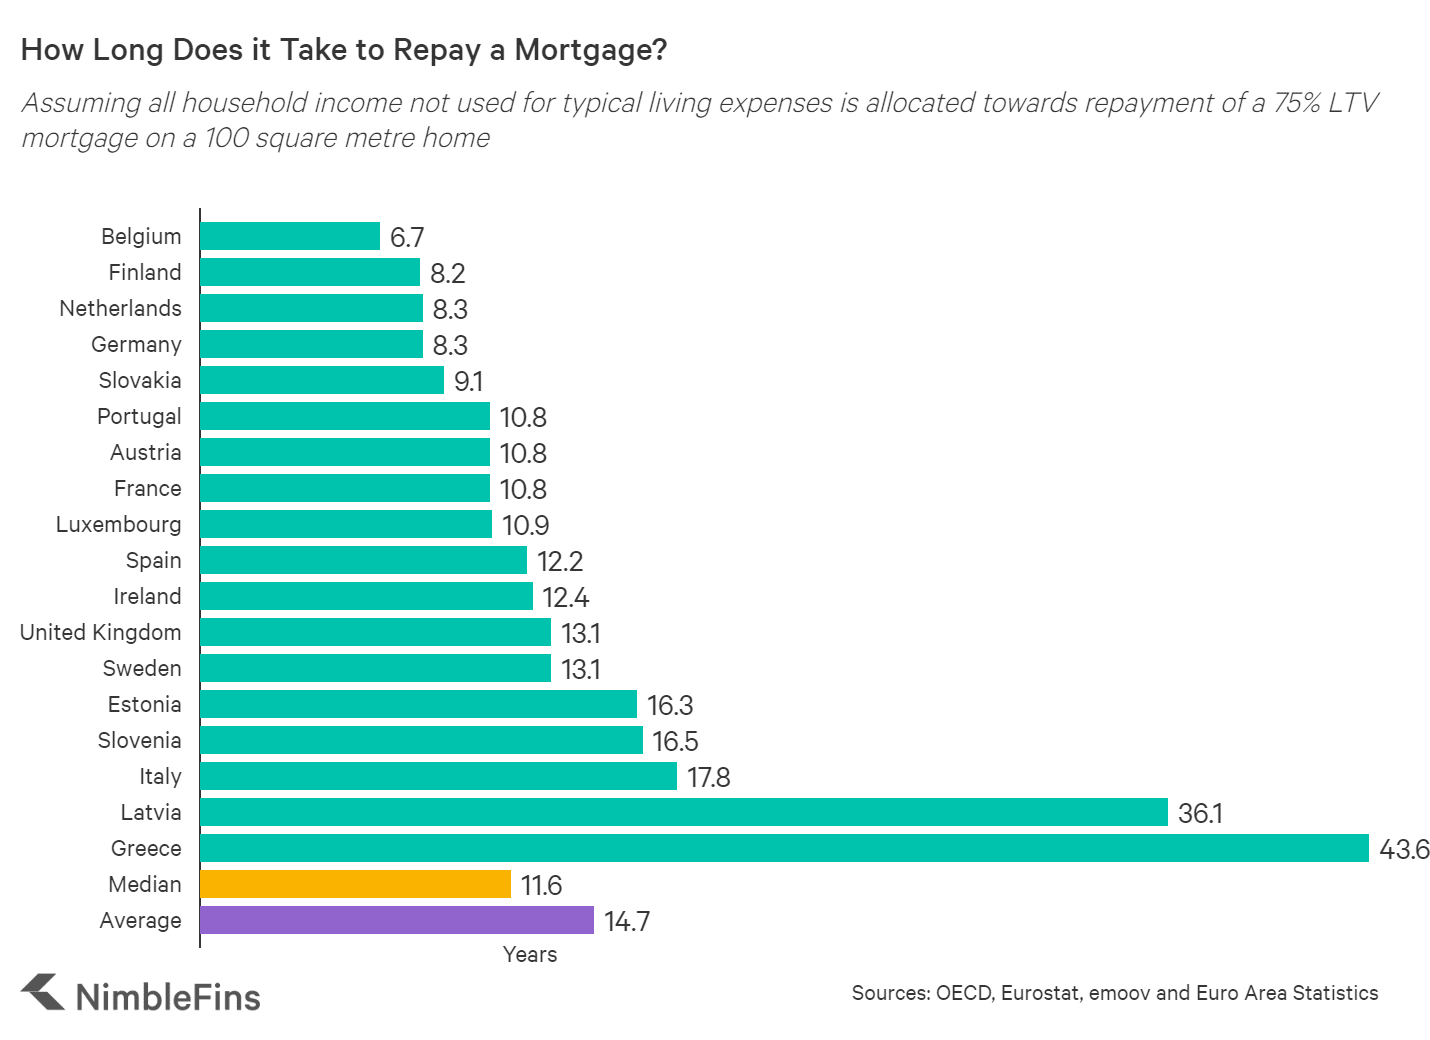 chart showing the number of years it would take to repay a mortgage in different European cities